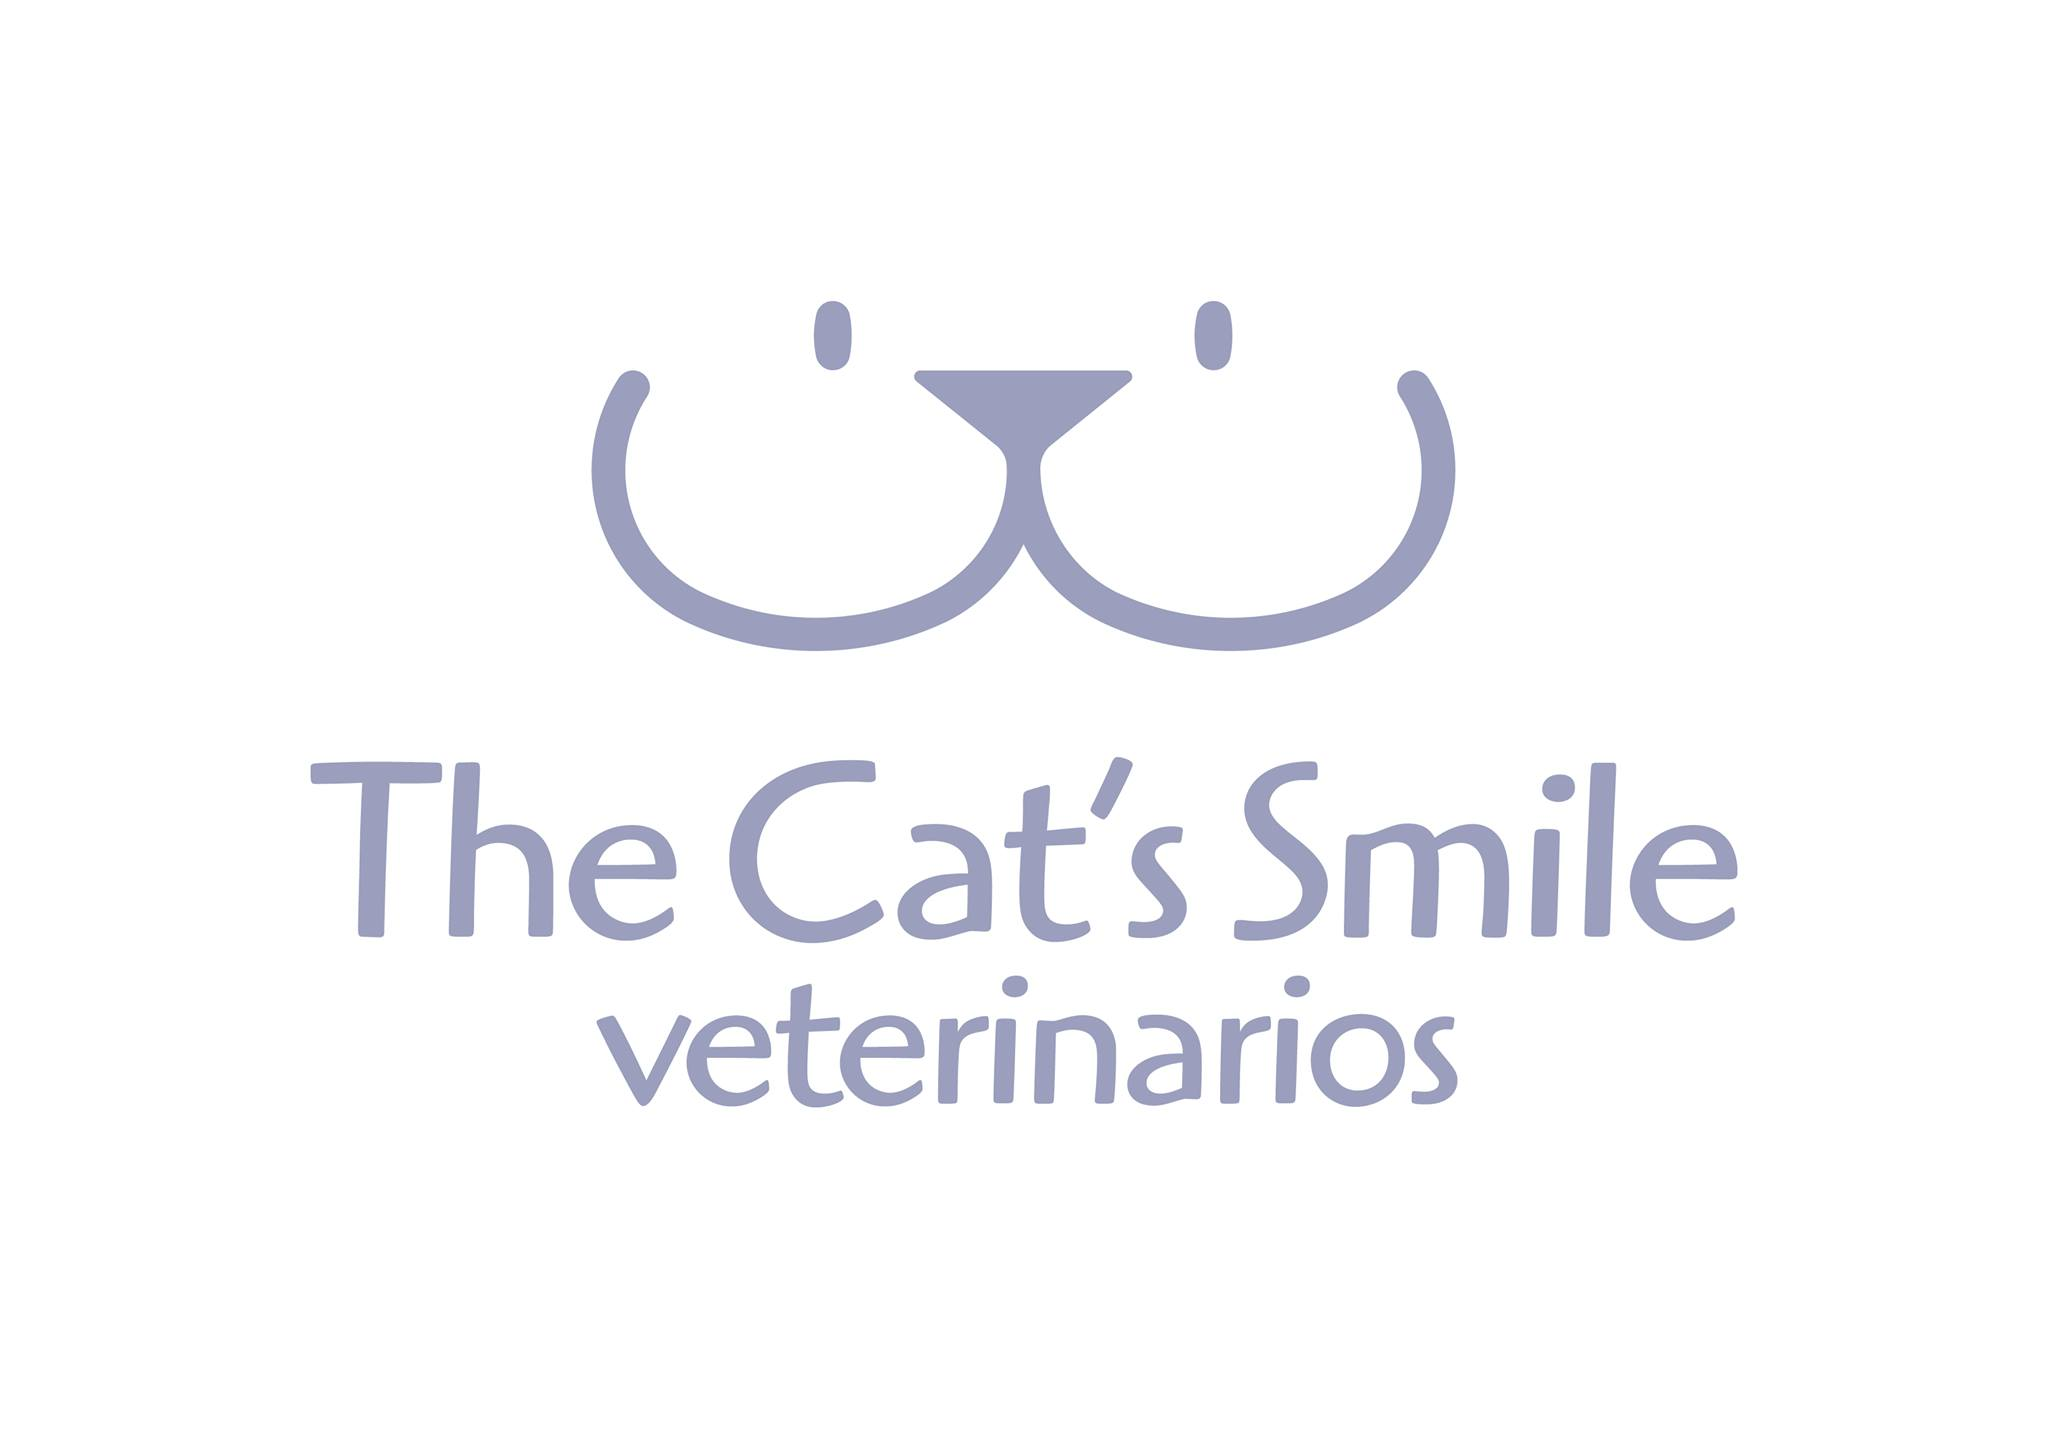 The Cat's Smile